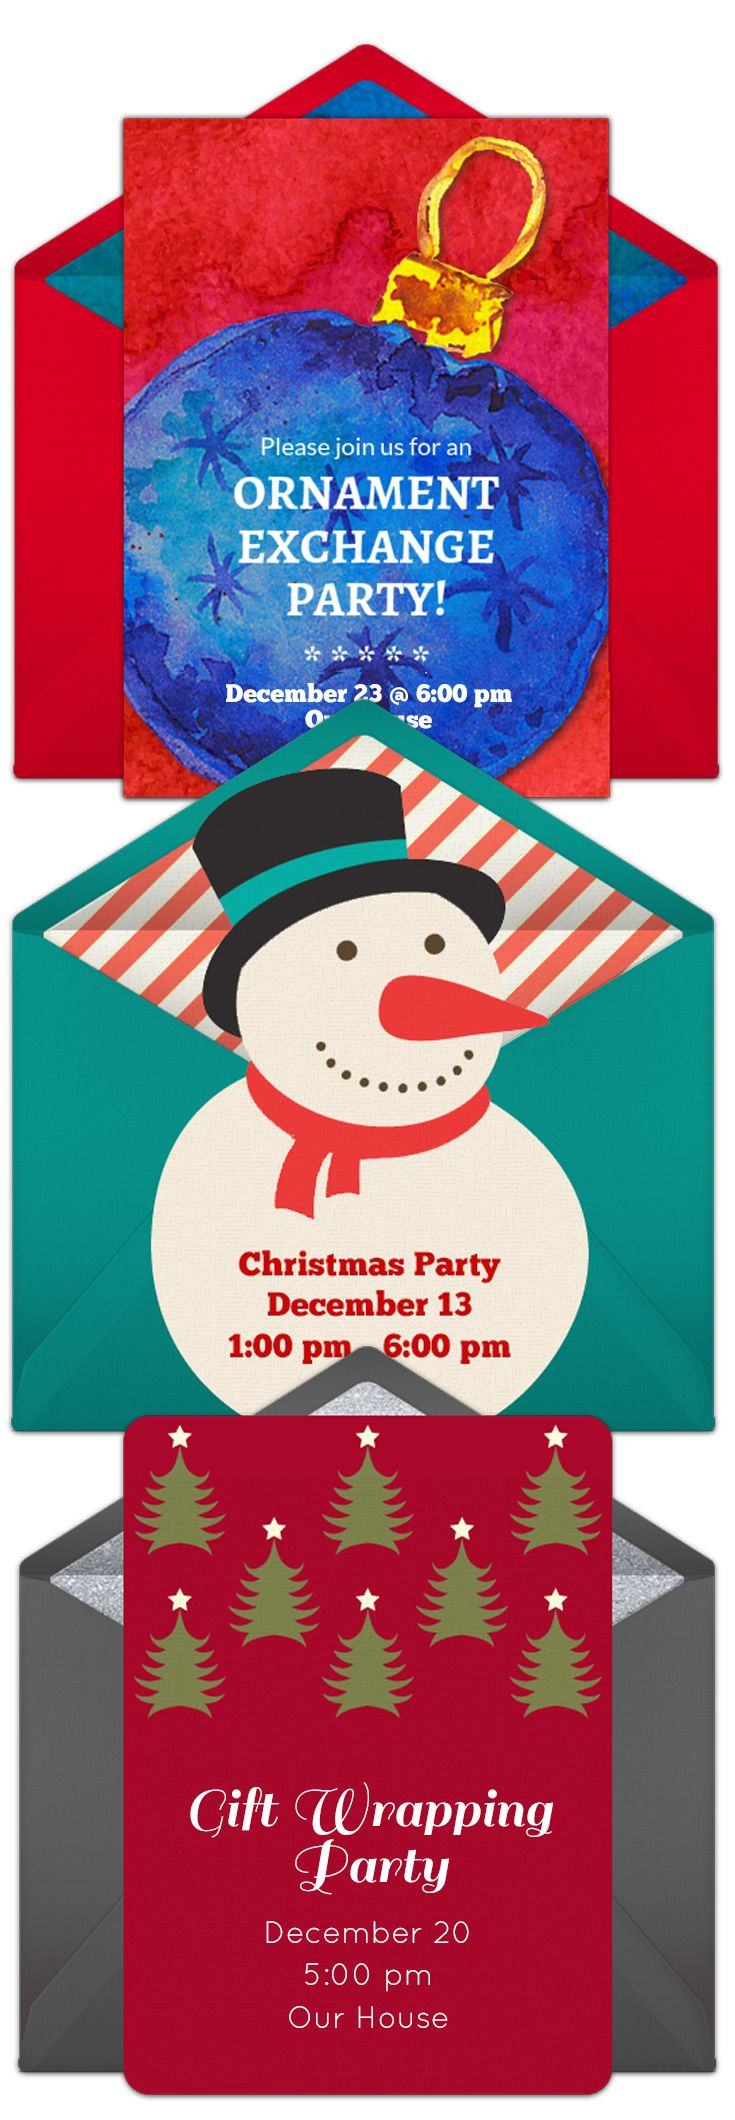 9 best Invitations images on Pinterest | Christmas parties, Xmas and ...